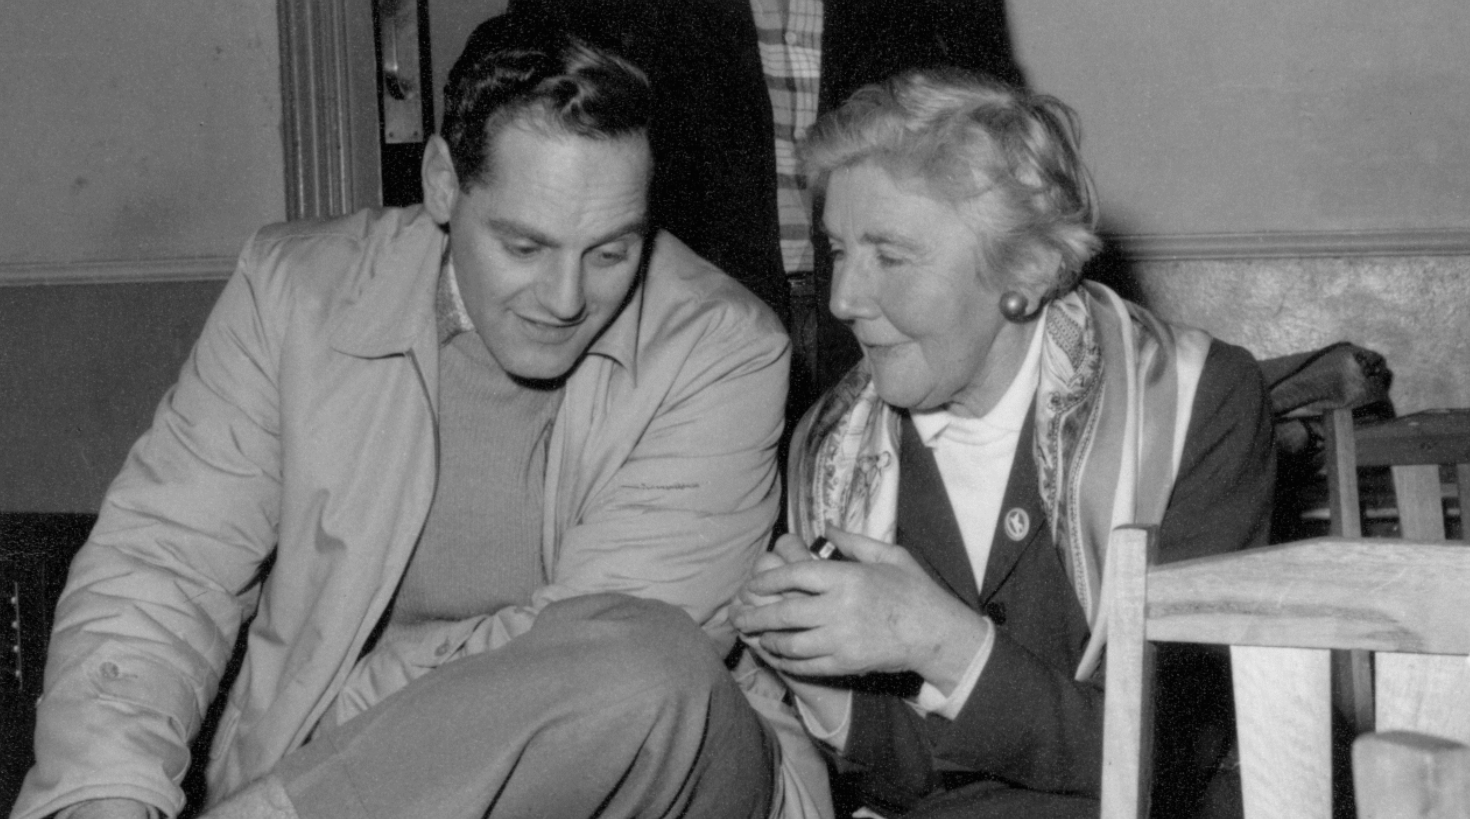 Dorothy Gibson and Joe Kiers at a celebration in Melbourne for Paul Robeson's birthday on 9th April 1962